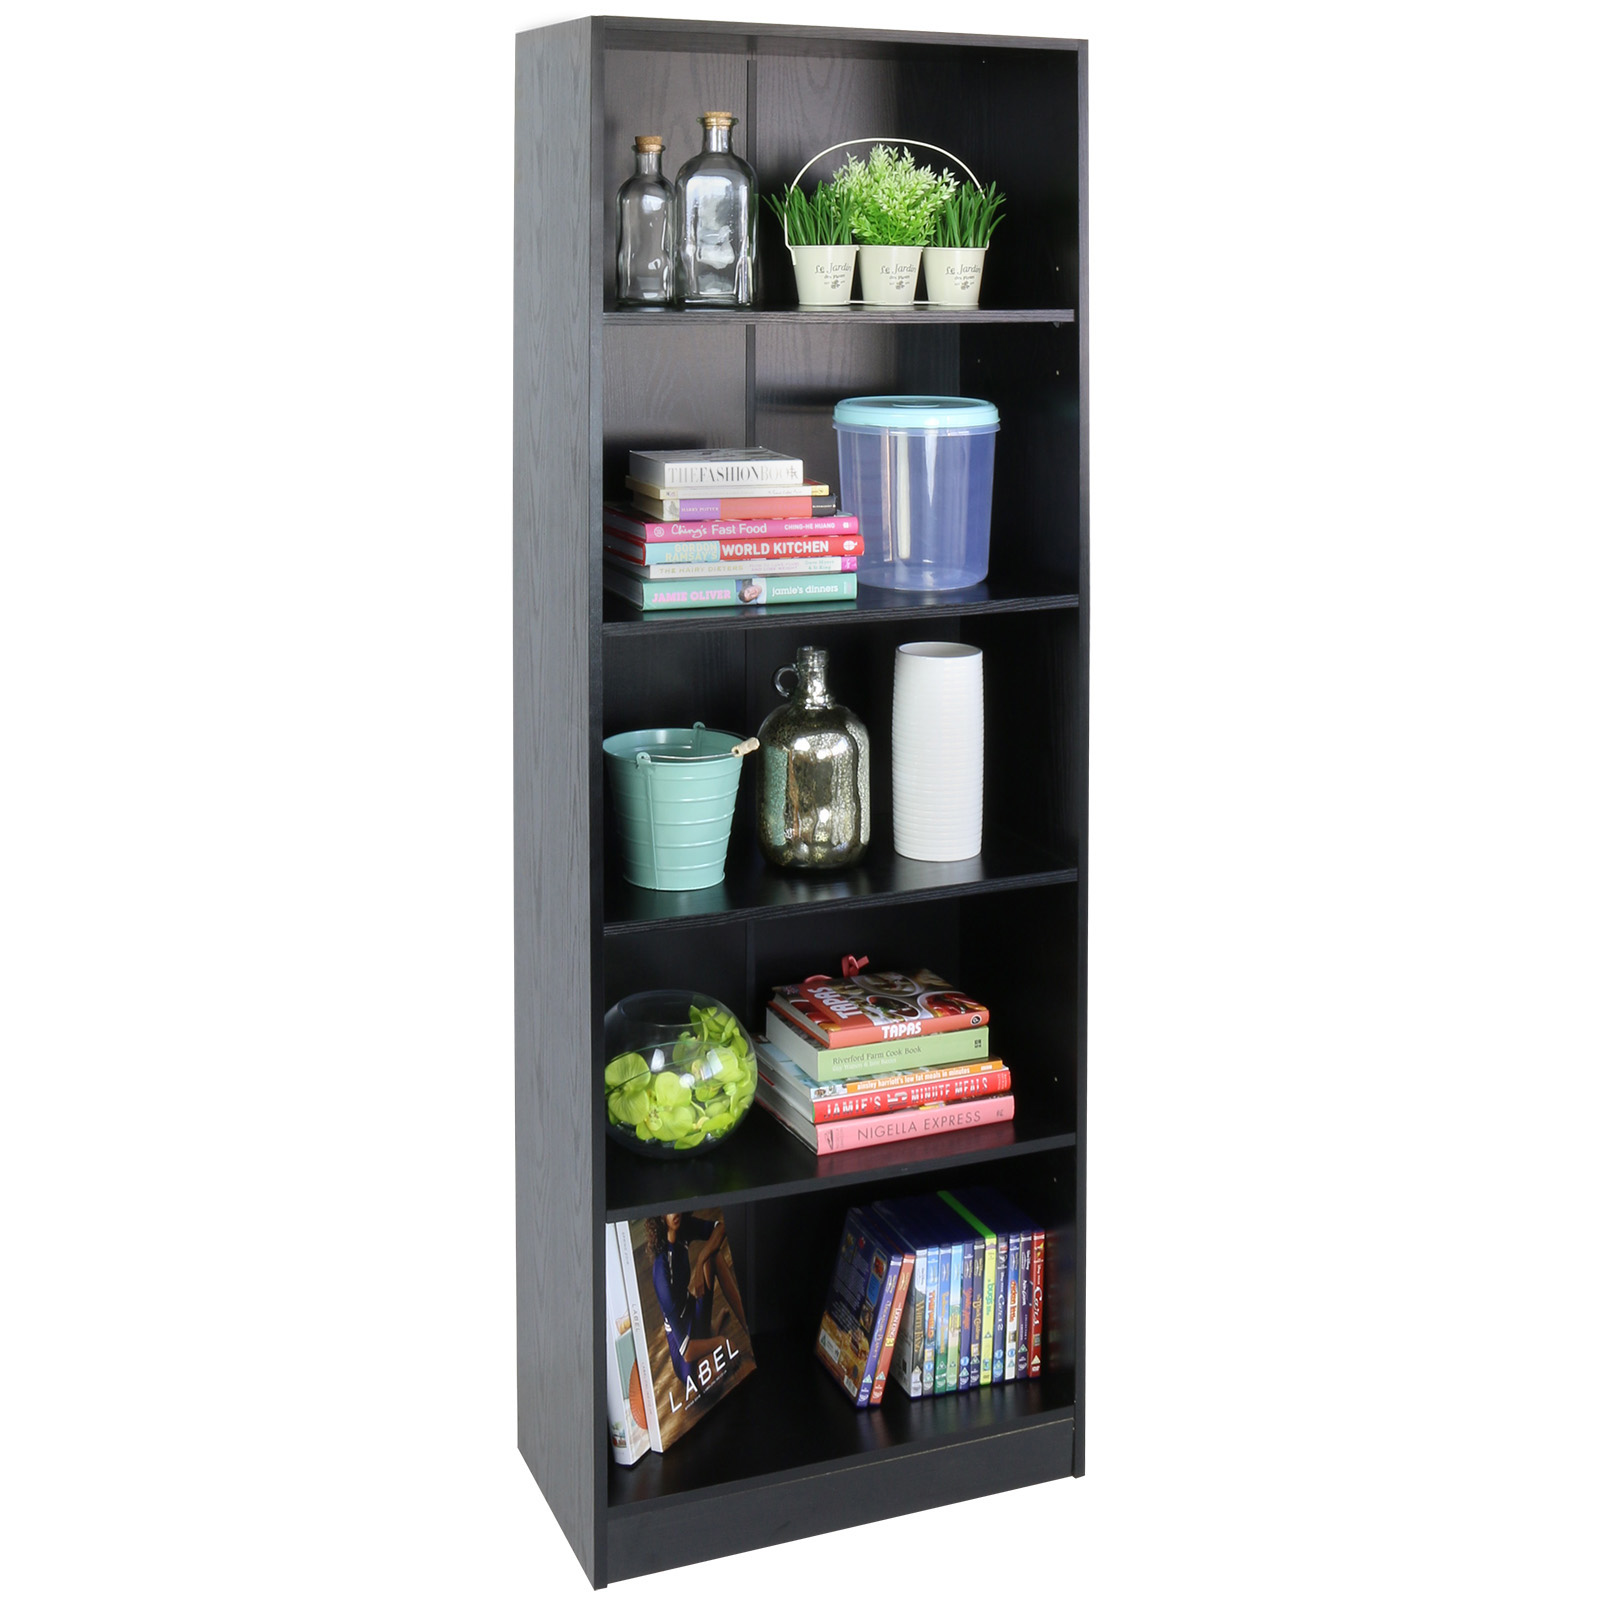 Hartleys 5 Tier Tall Black Wooden Freestanding Bookcase: how deep should a bookshelf be